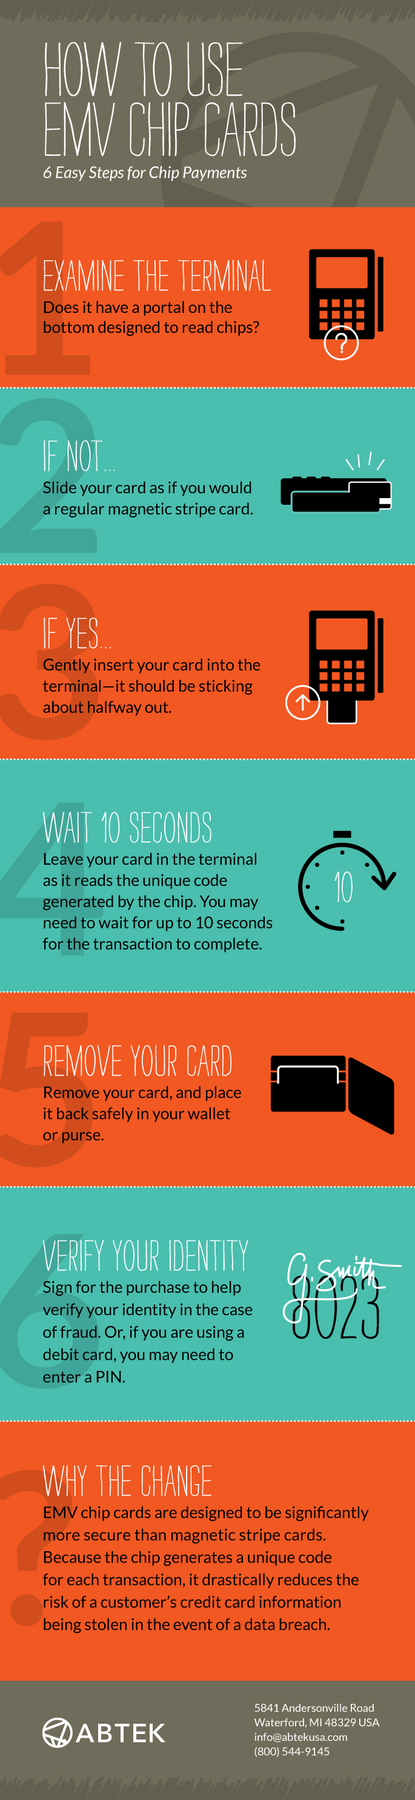 How to Use EMV Cards | Abtek